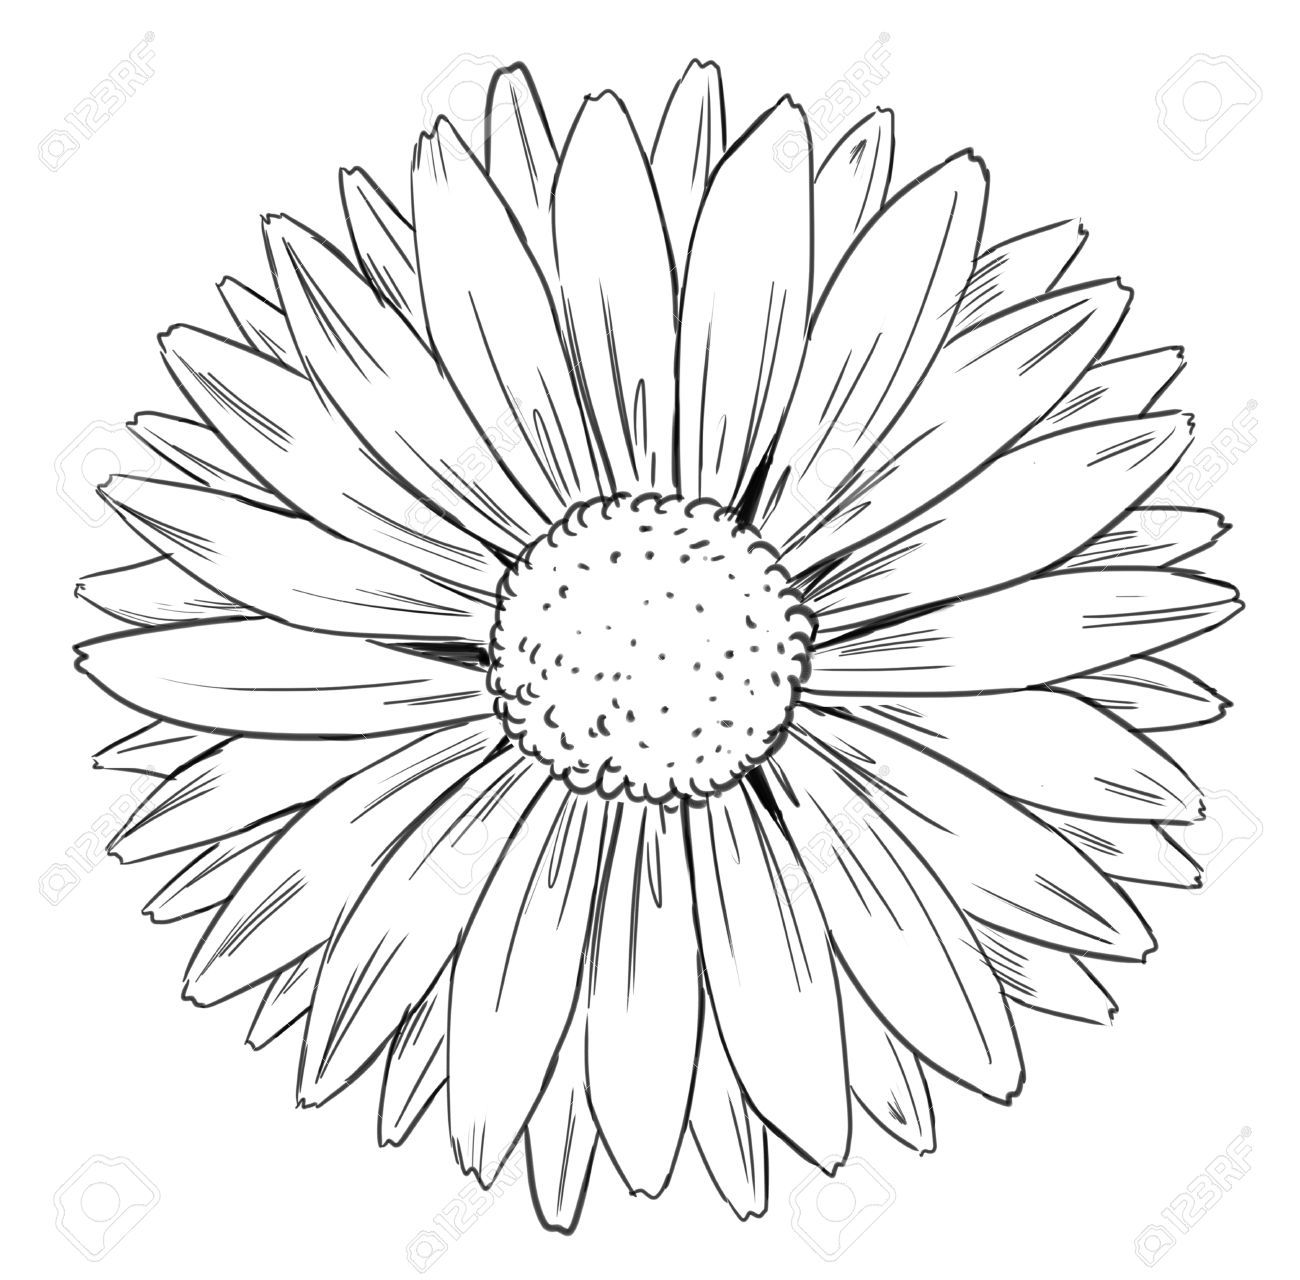 Daisy Sunflower Images, Stock Pictures, Royalty Free Daisy